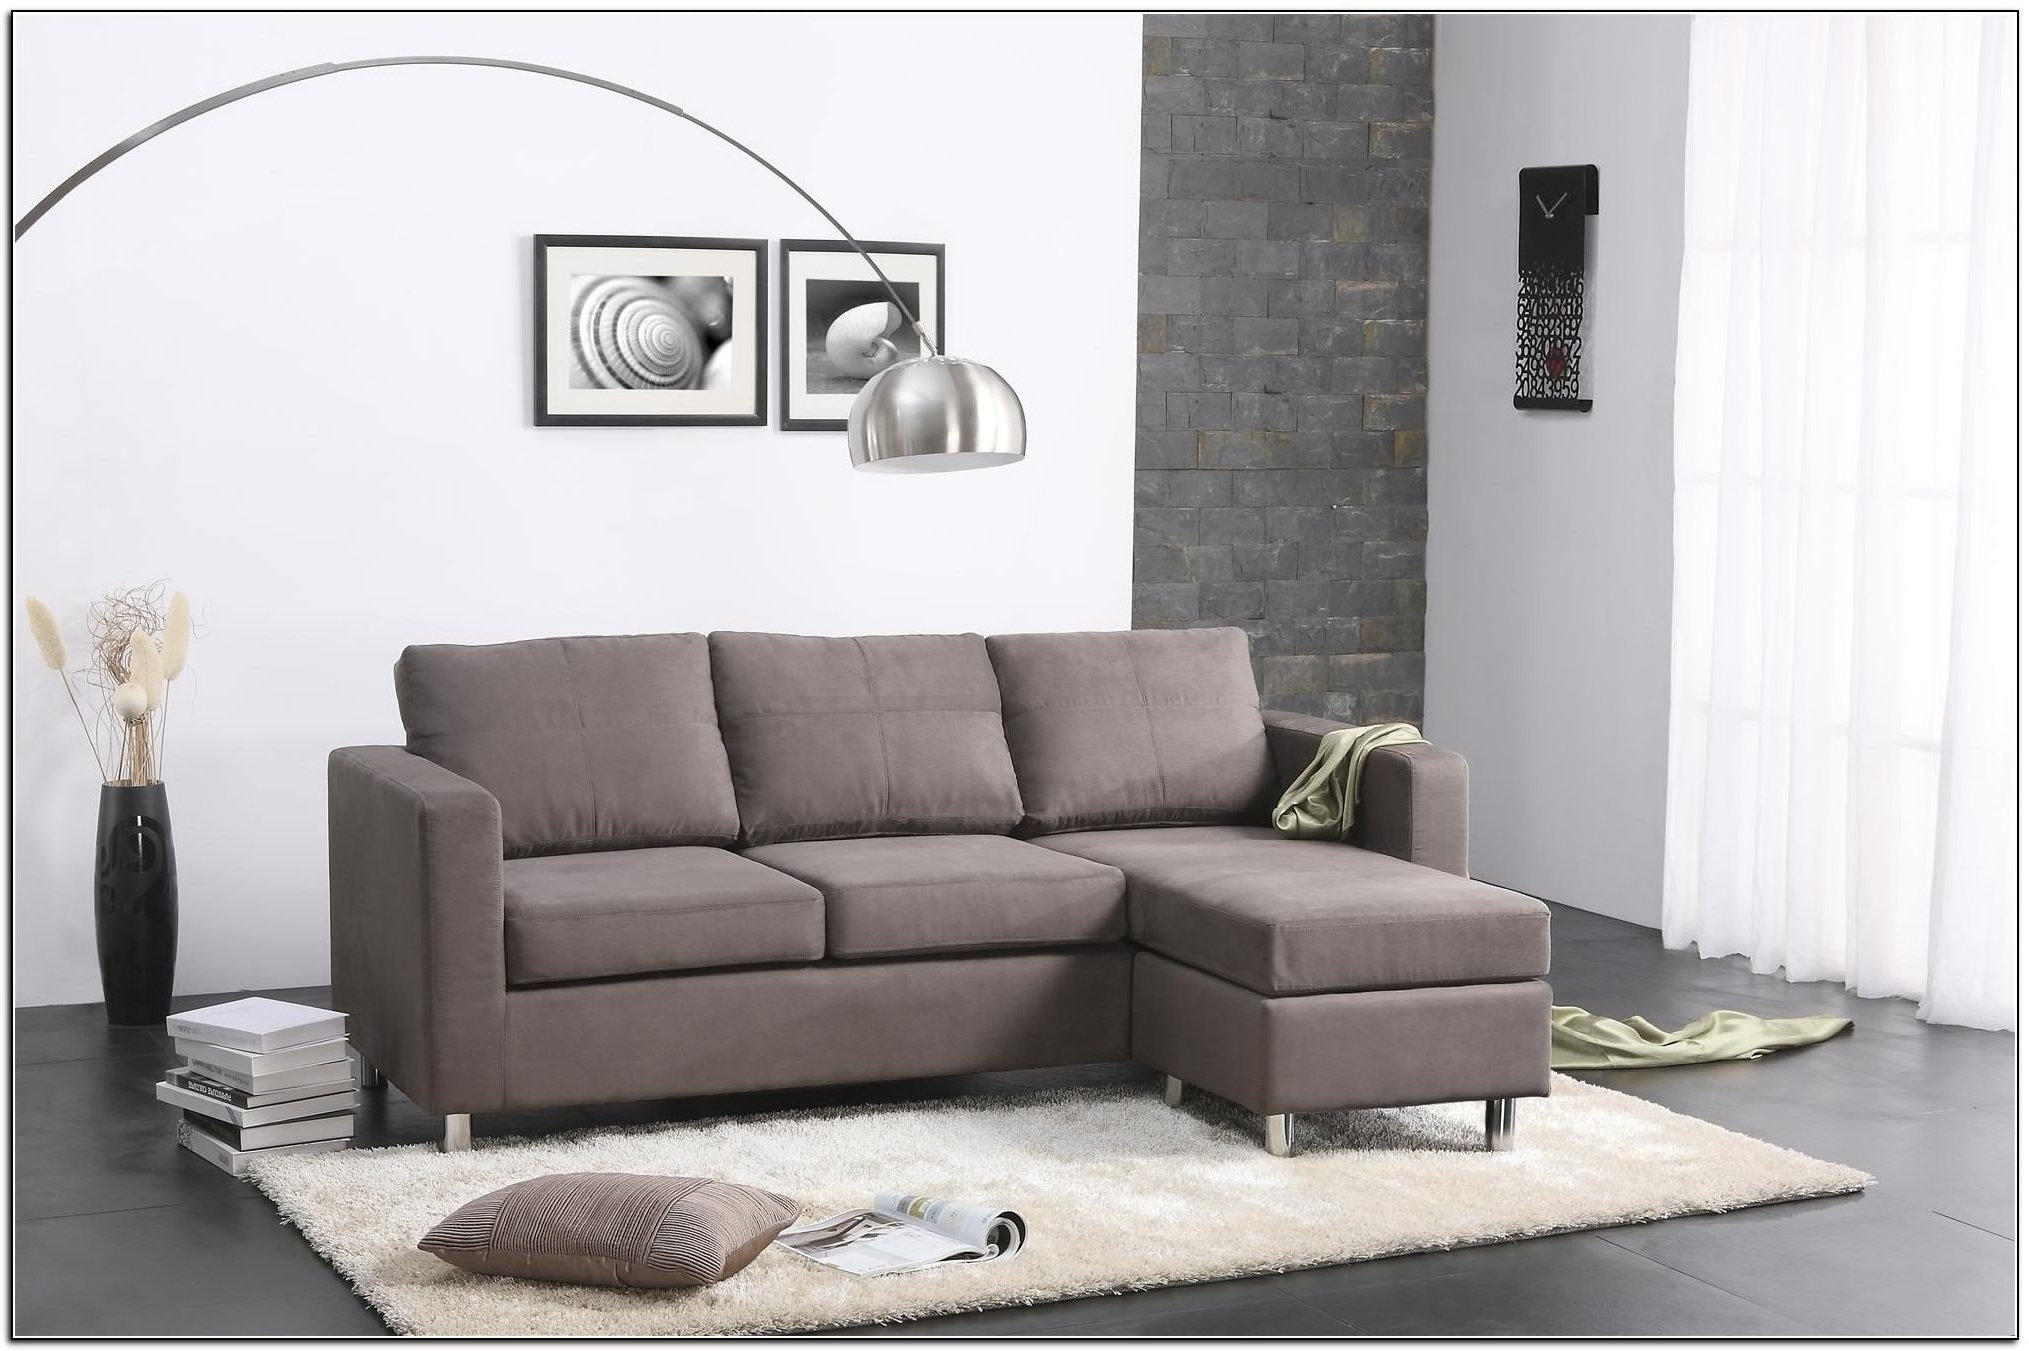 Trendy Sectional Sofa Design: Small Sectional Sofa Cheap Space Couch Pertaining To North Carolina Sectional Sofas (View 18 of 20)